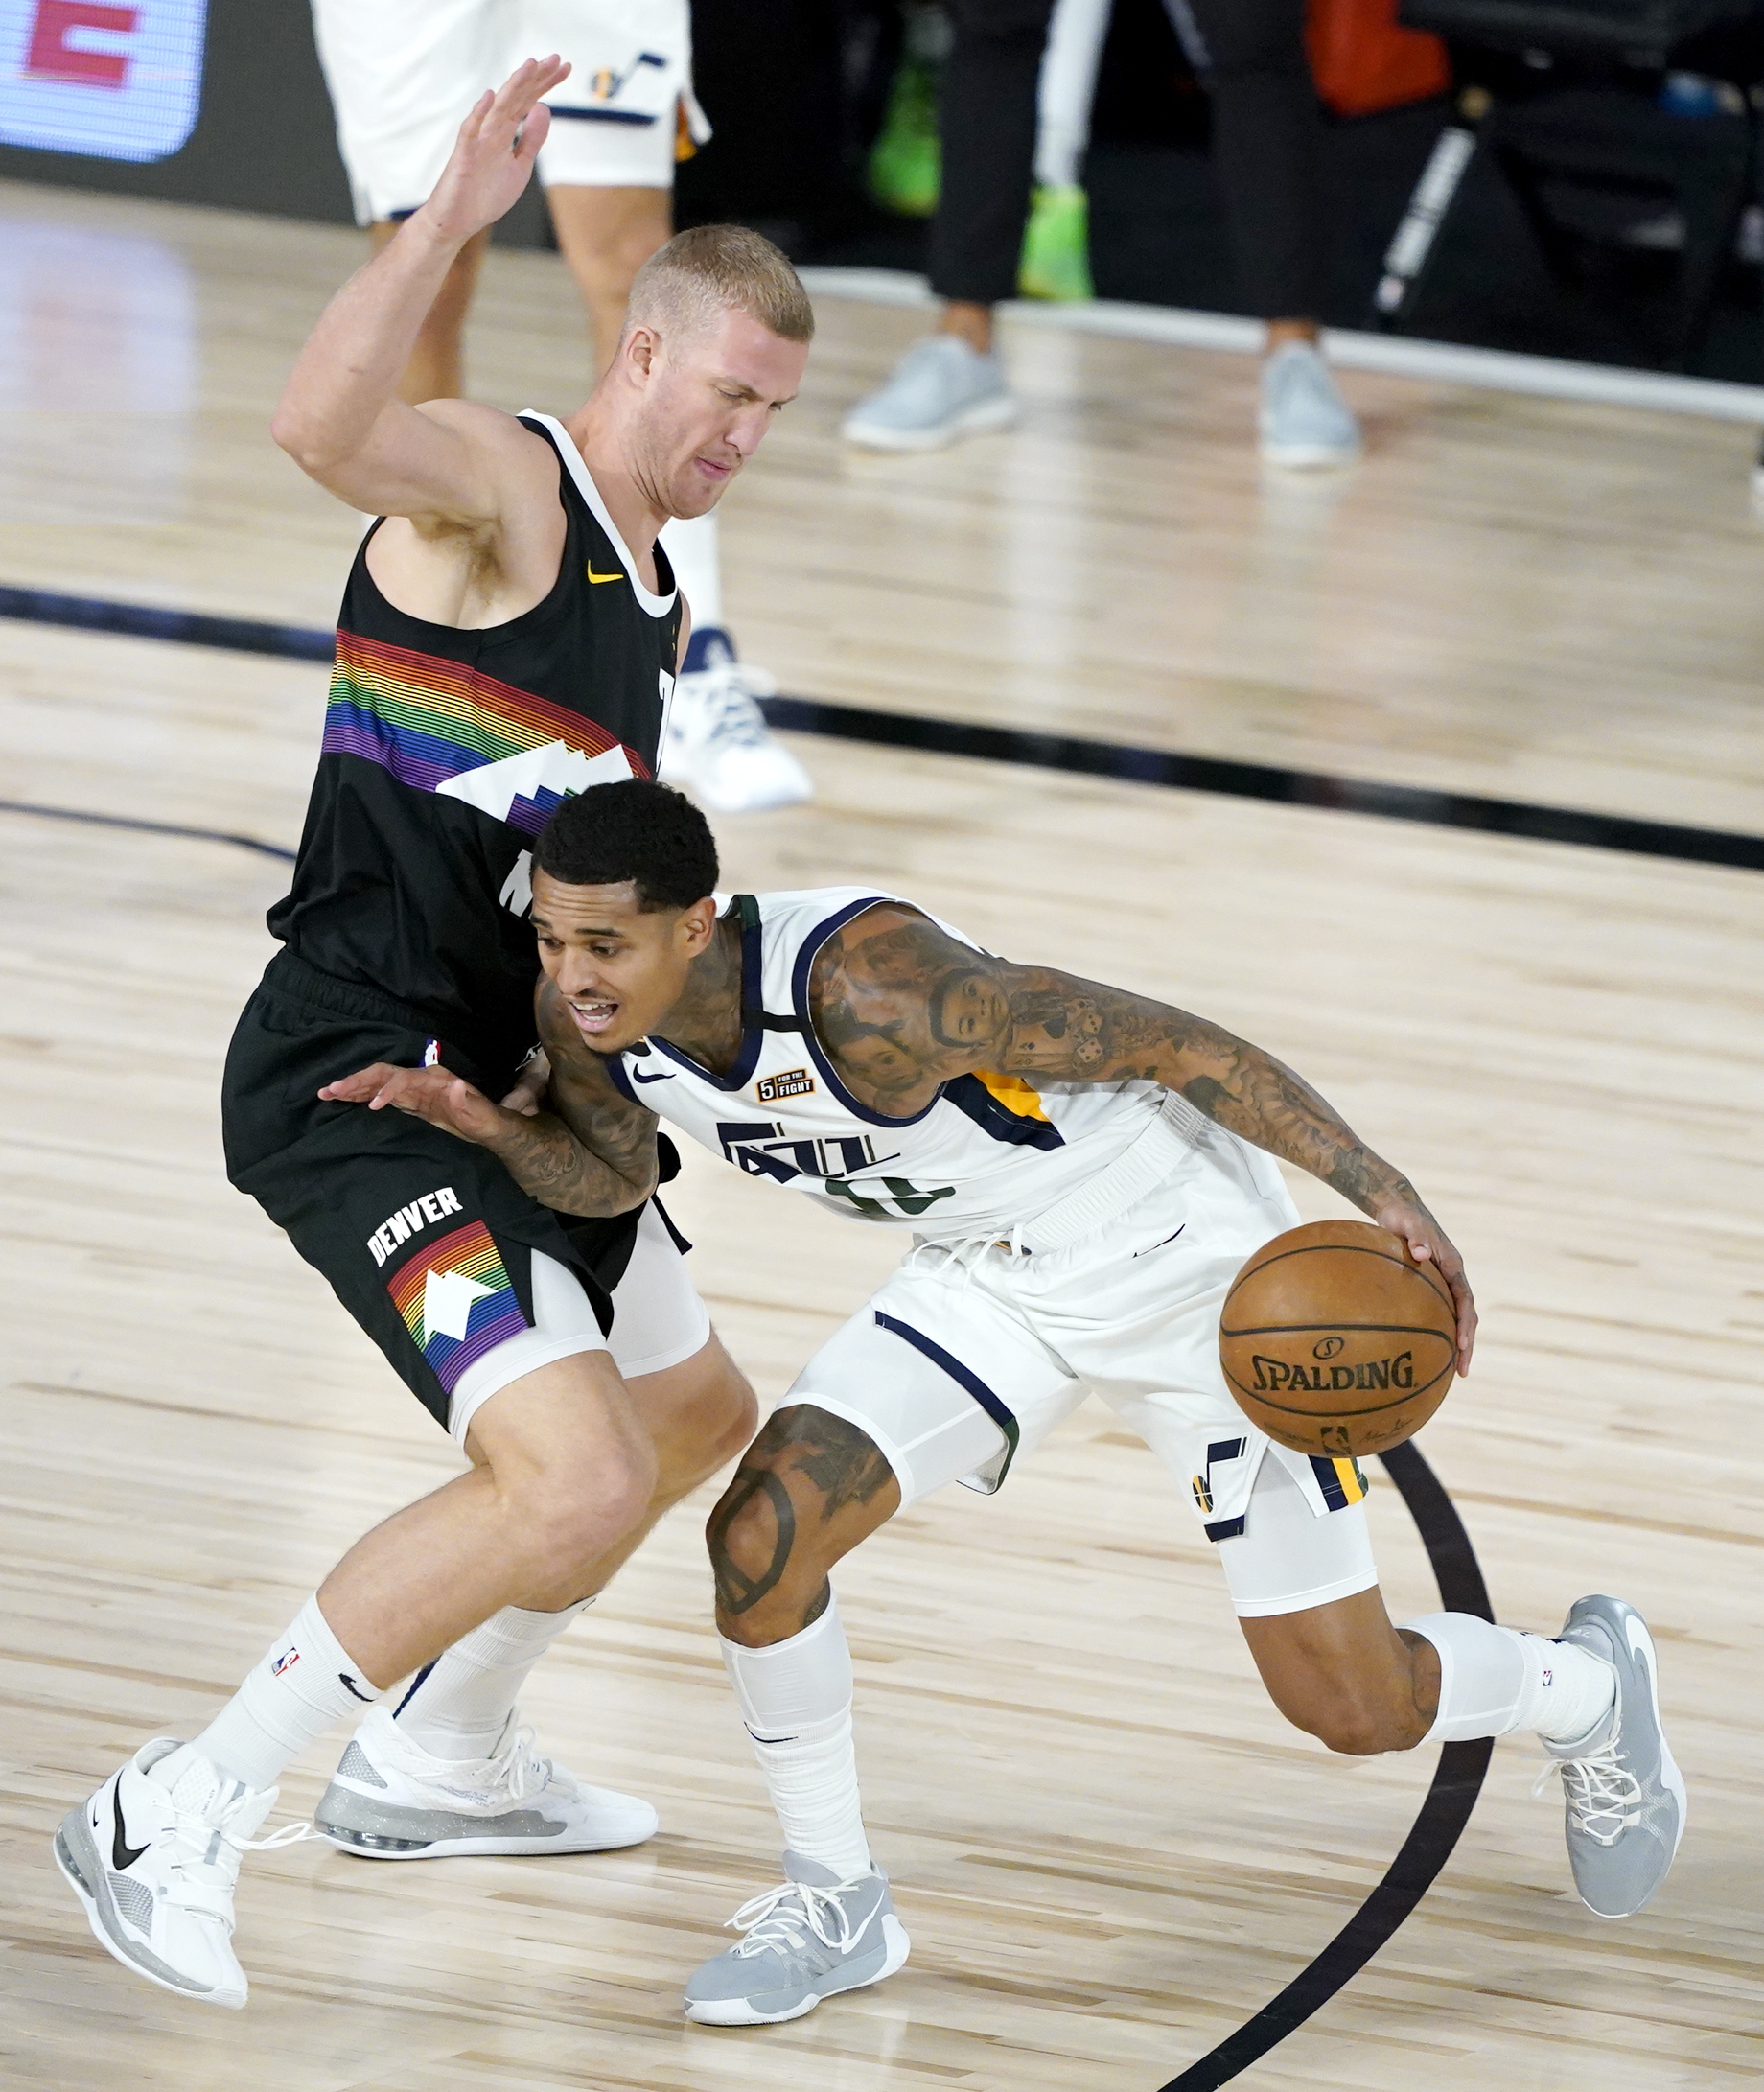 Utah Jazz's Jordan Clarkson (00) drives against Denver Nuggets' Mason Plumlee (7) during the first half of an NBA basketball first round playoff game, Monday, Aug. 17, 2020, in Lake Buena Vista, Fla. (AP Photo/Ashley Landis, Pool)